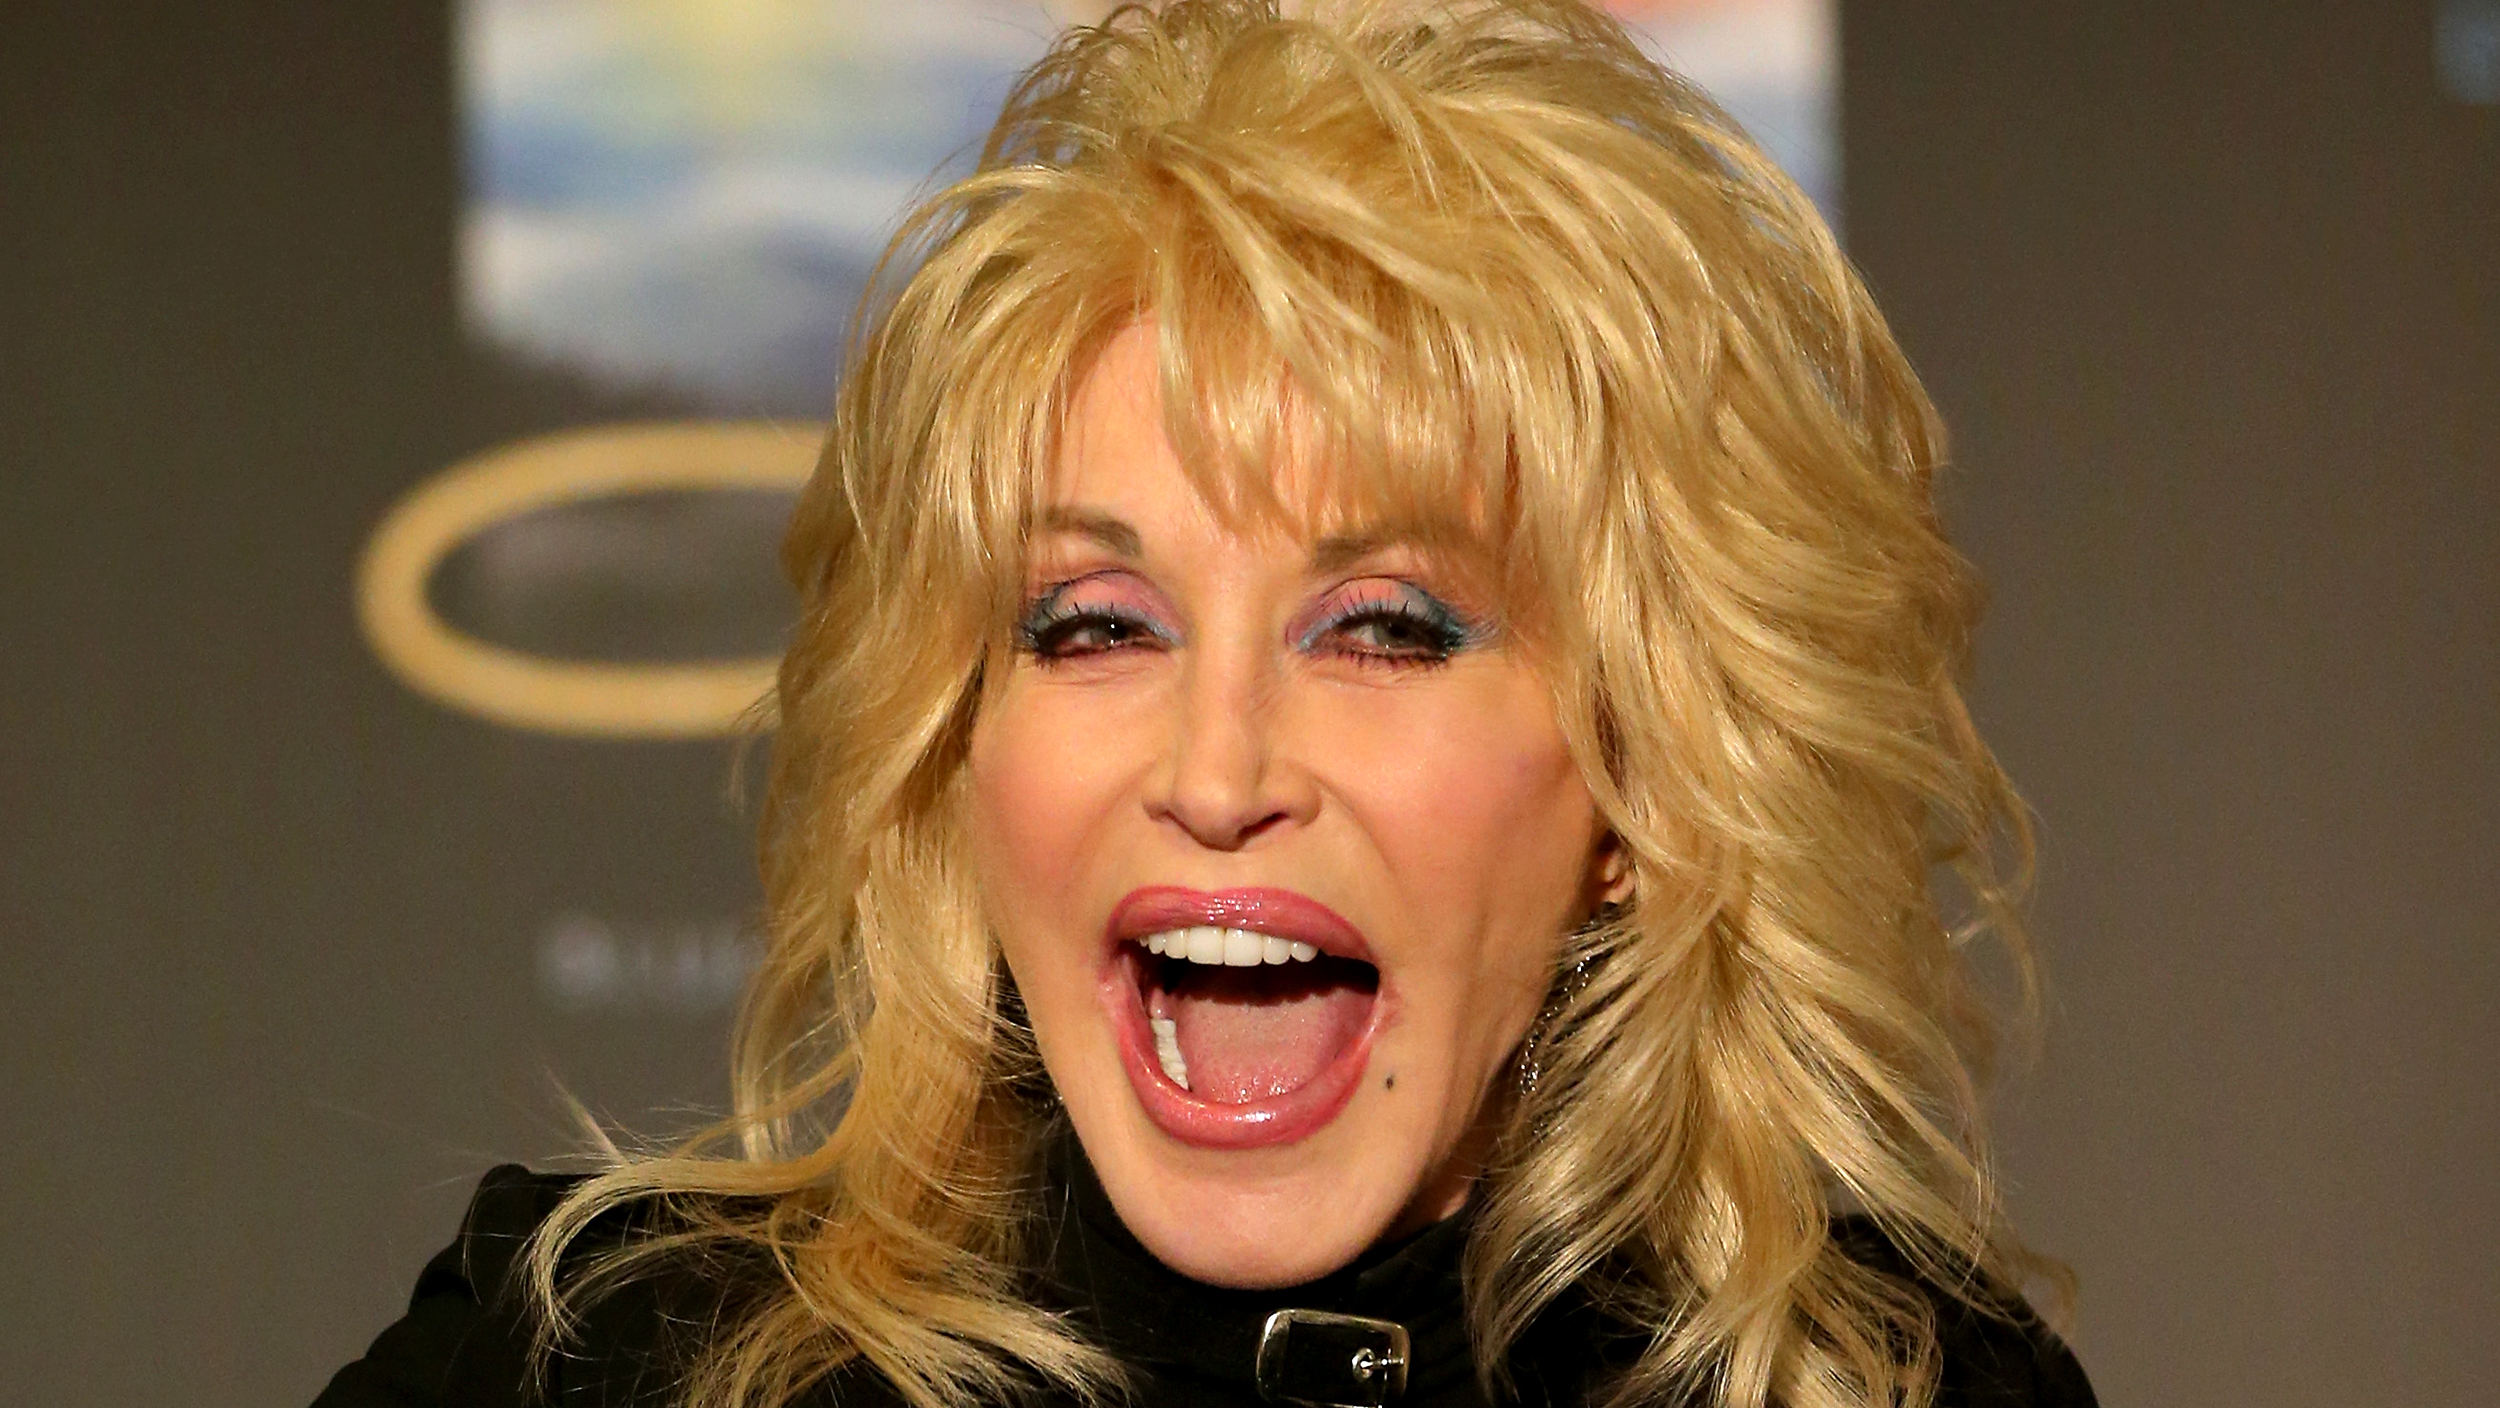 Dolly Parton: 5 Style Lessons We Can Learn From Dolly Parton